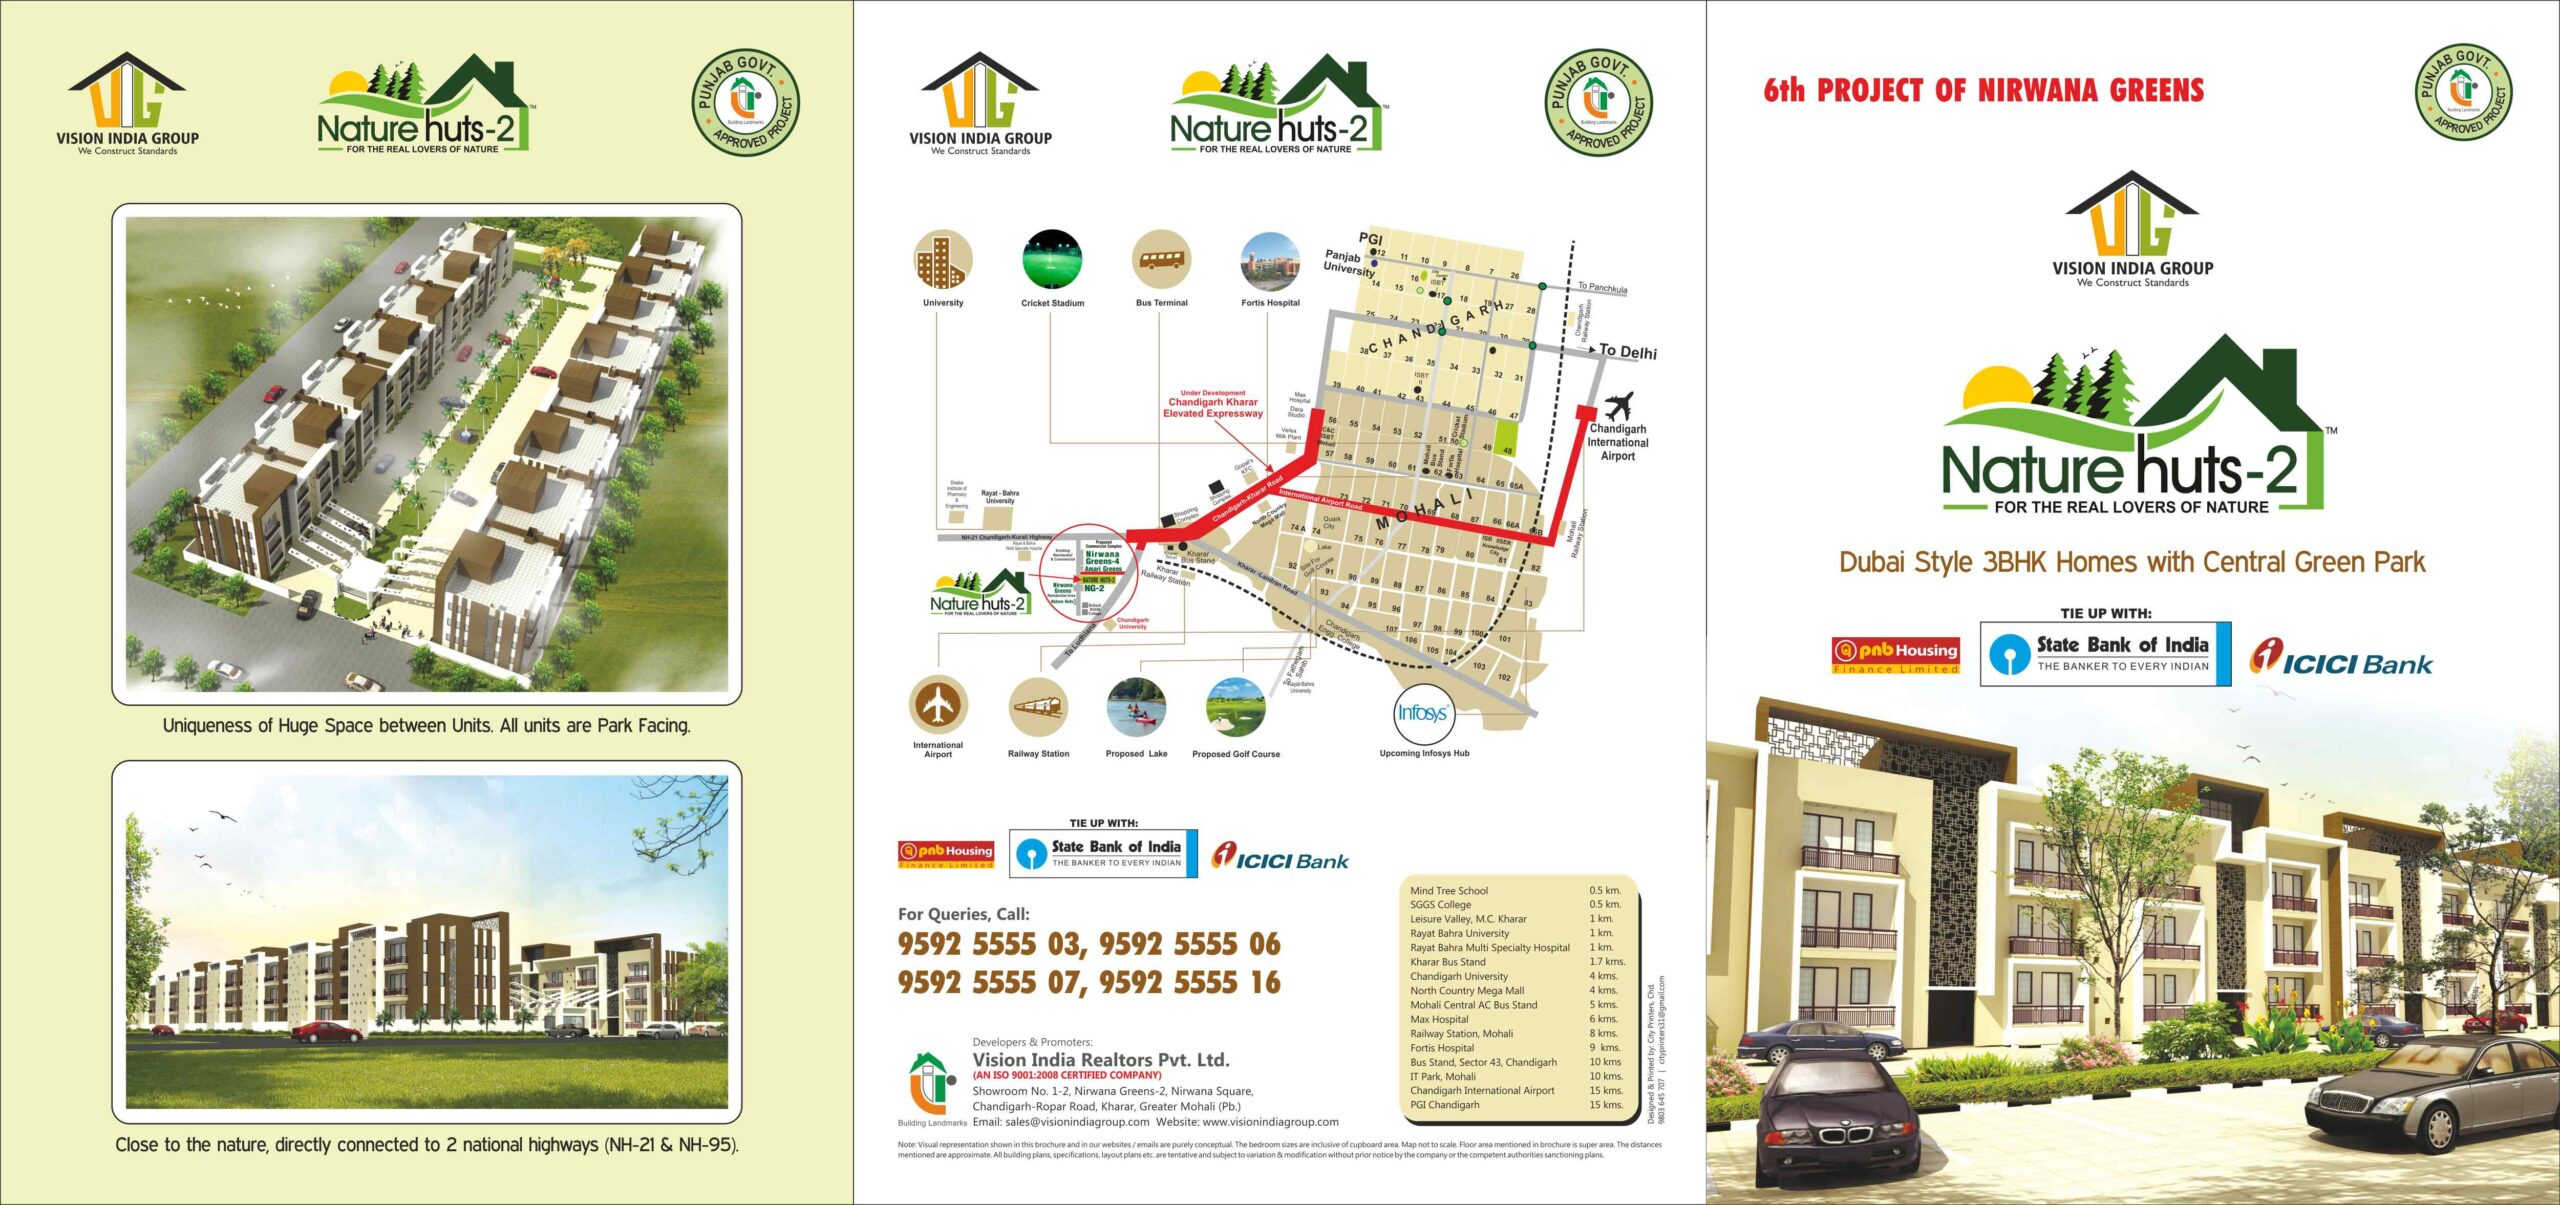 nature-huts-2-brochure-outer-3